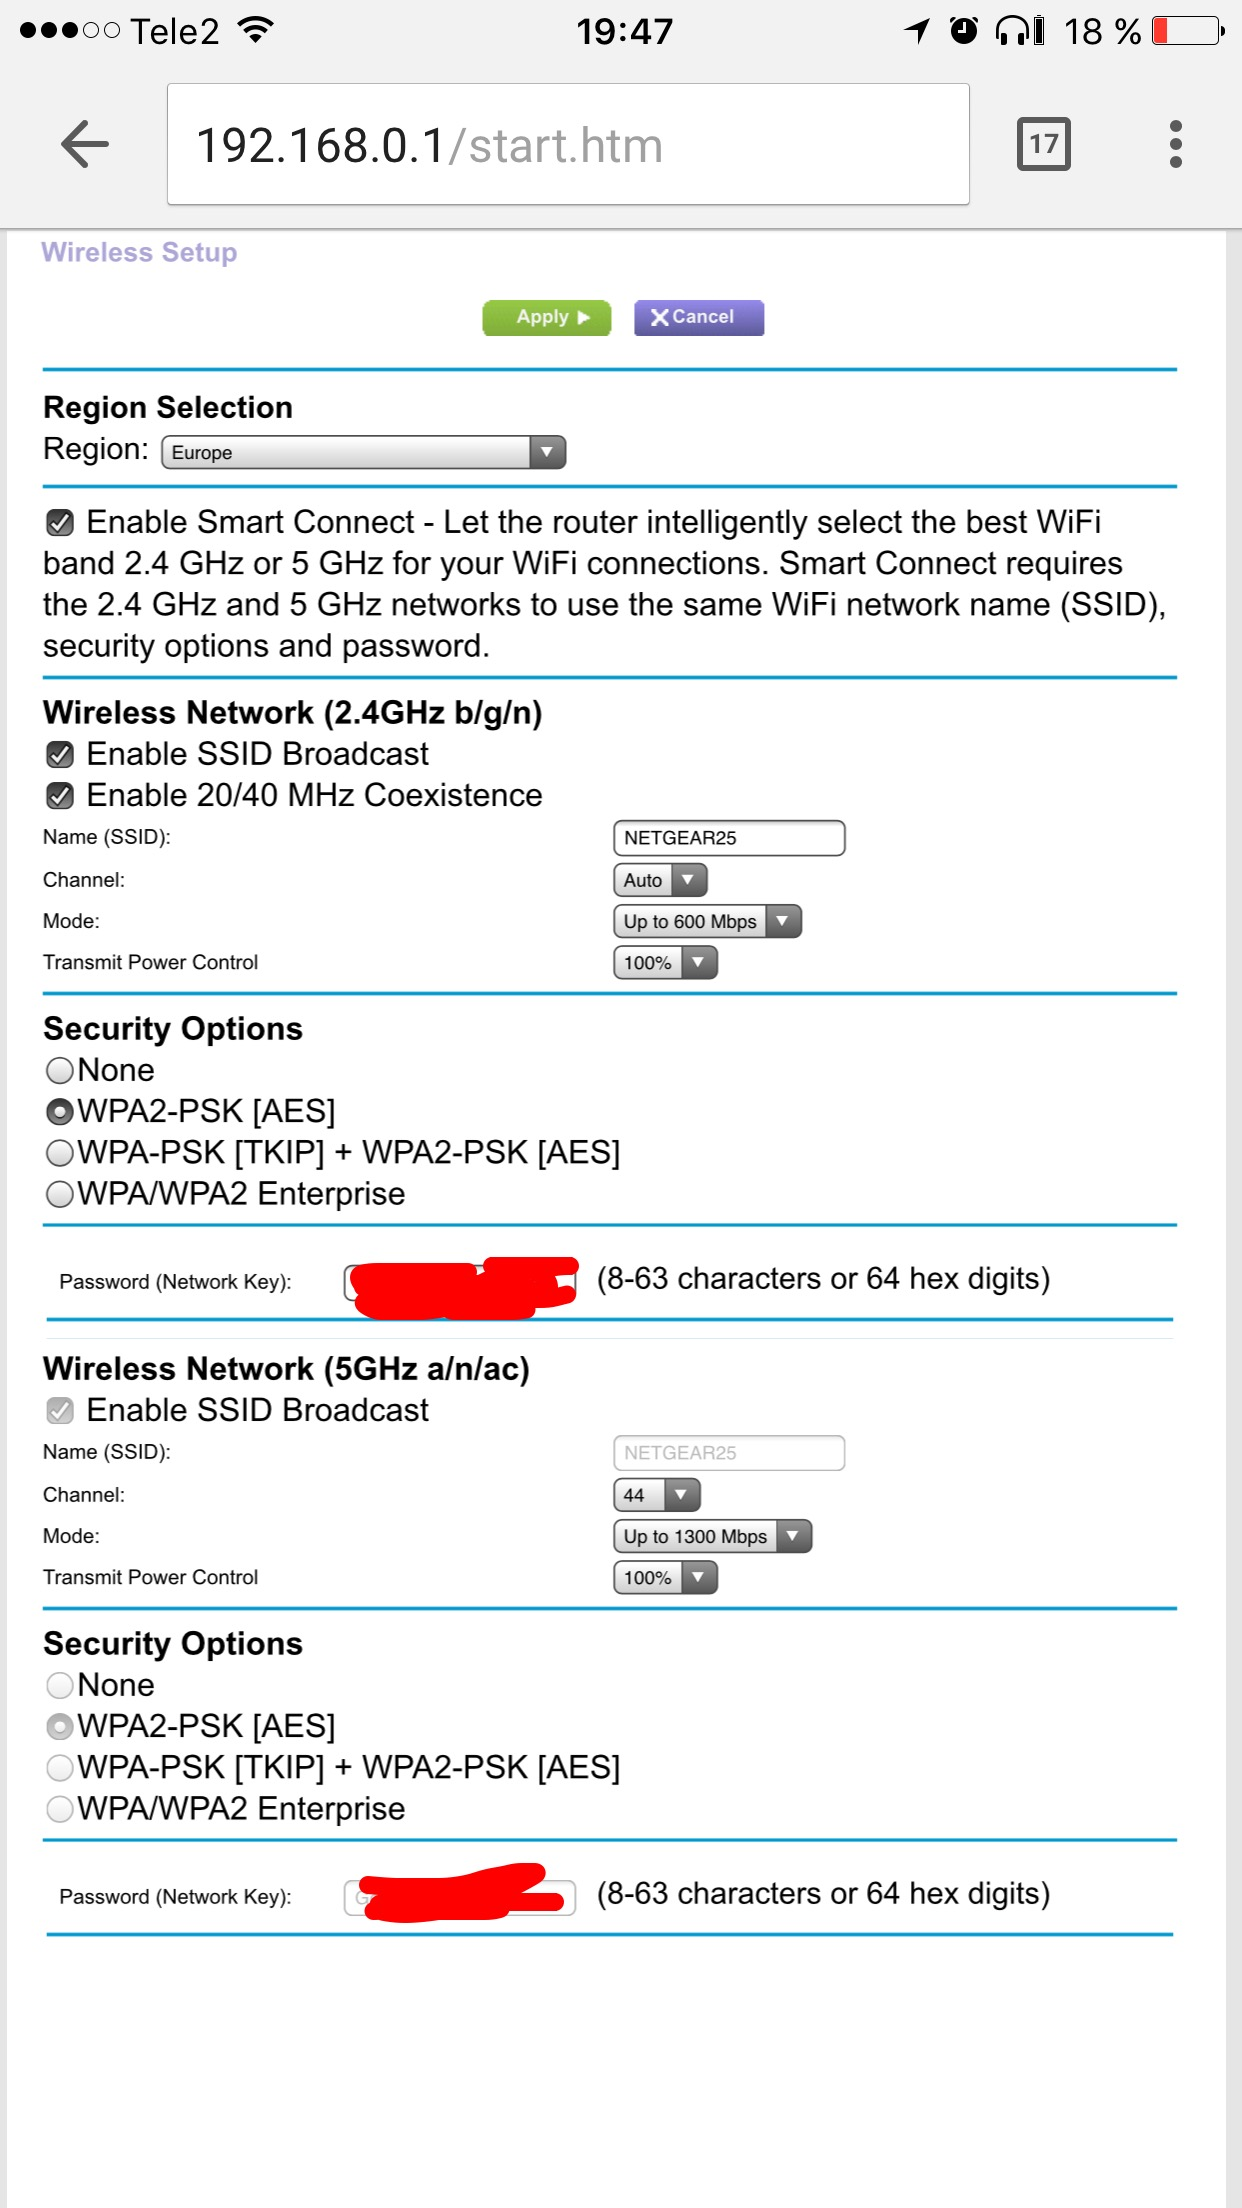 Slow wireless download speed AC1900 r7000 nighthaw    - Page